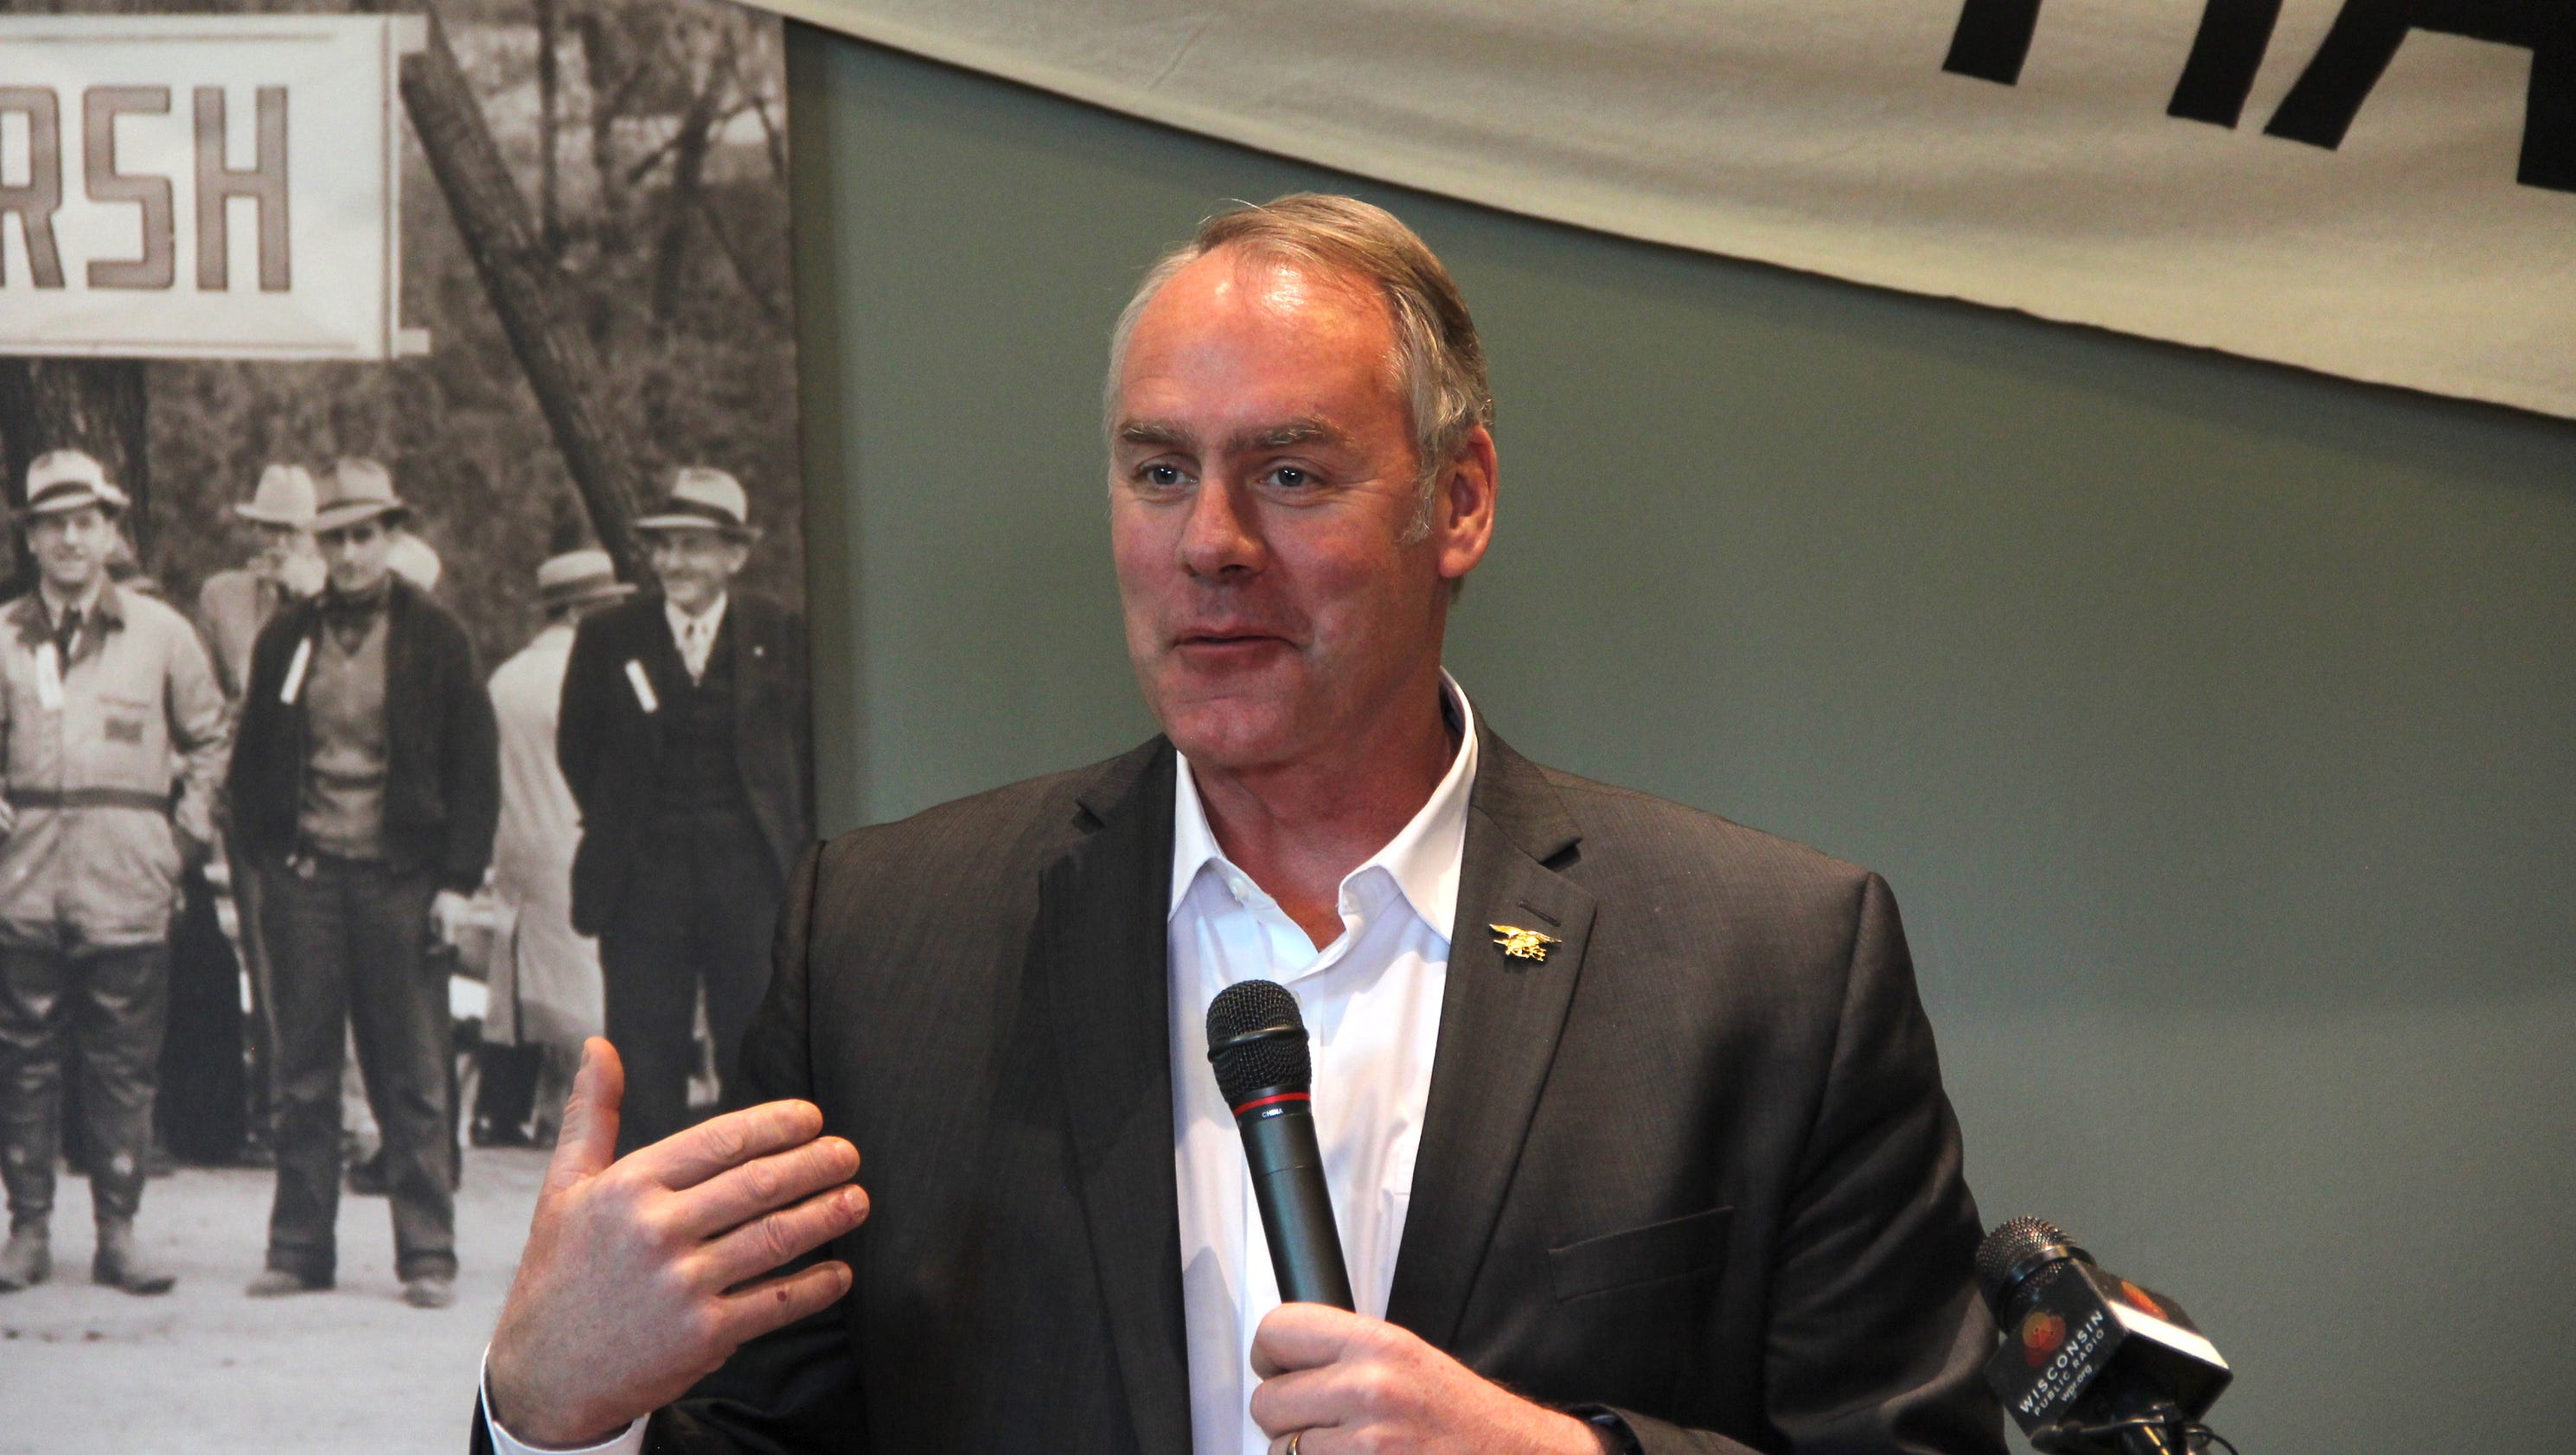 Ryan Zinke 39 S Appearance Puts Spotlight On Taxes Conservation Programs